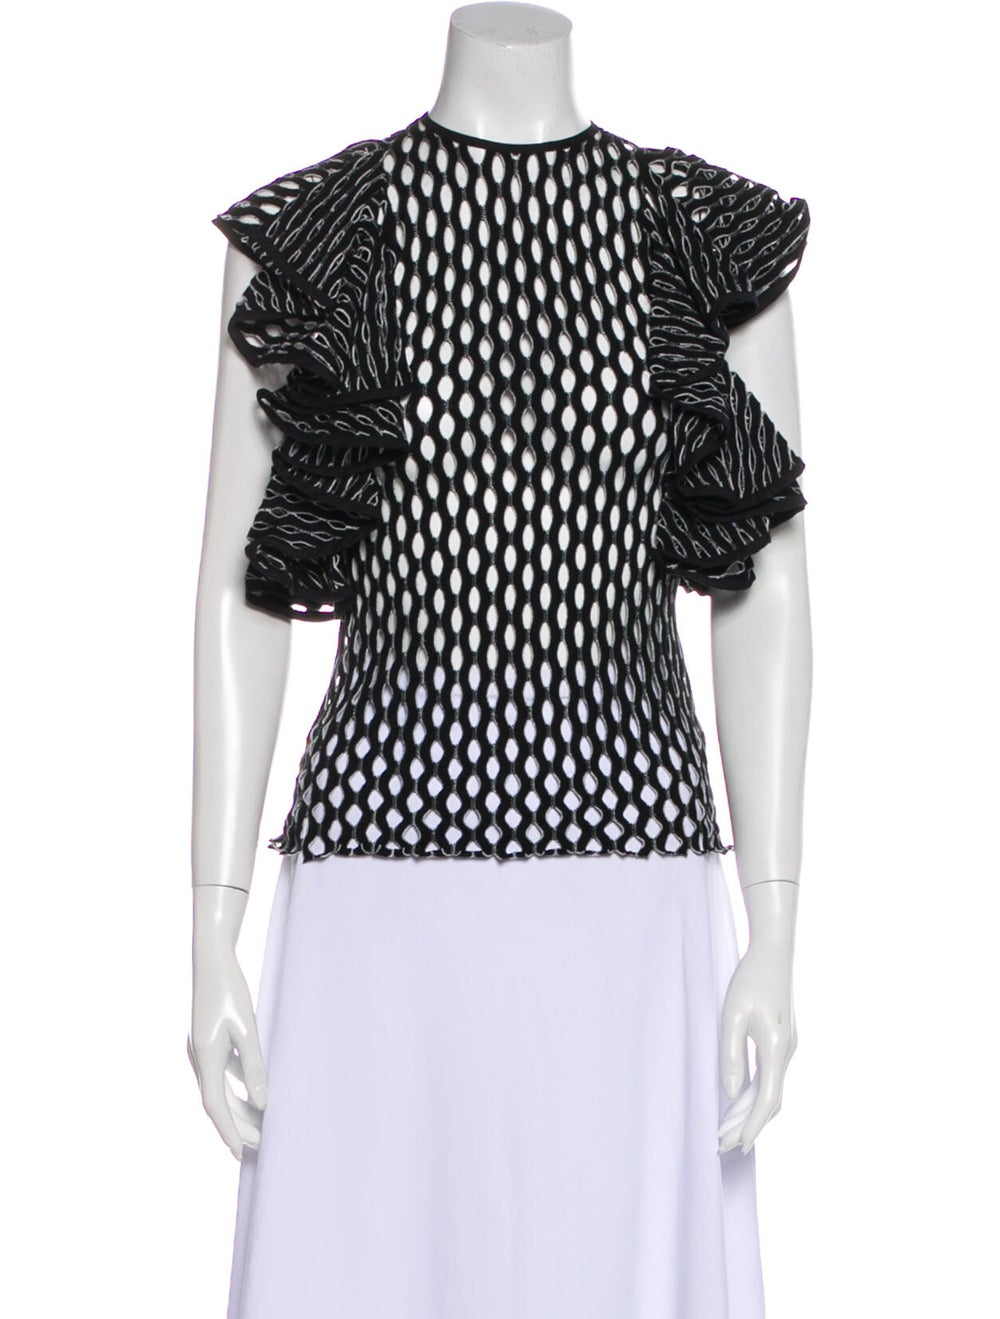 Beaufille Printed Crew Neck Blouse Black - image 1